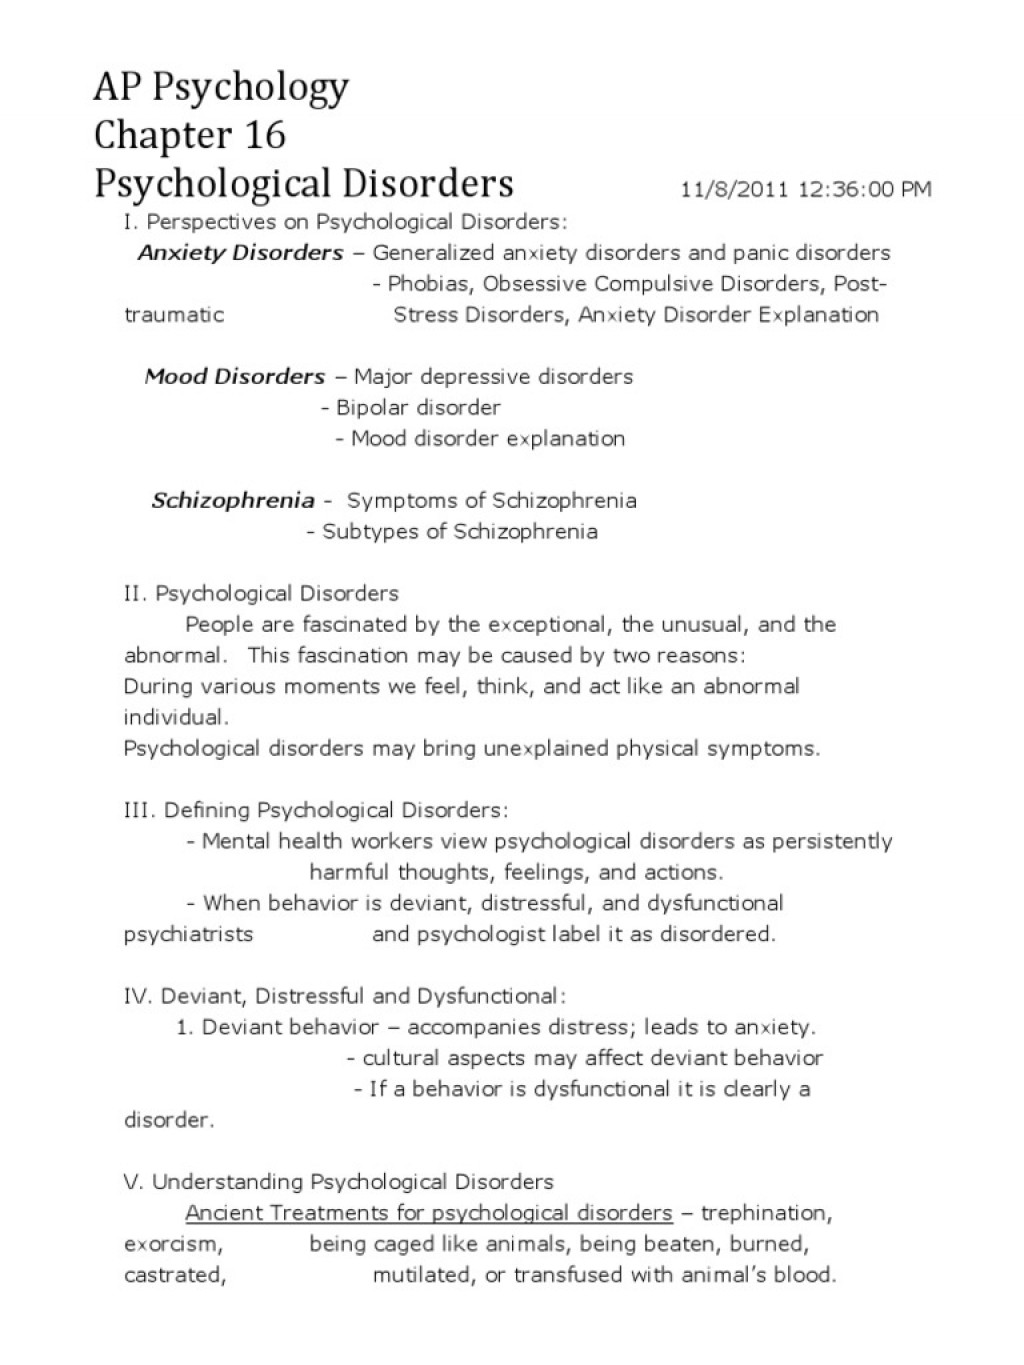 008 Bipolar Disorder Essay Topics Title Pdf College Introduction Question Conclusion Examples Outline Research Paper English Marvelous 101 Rubric Large